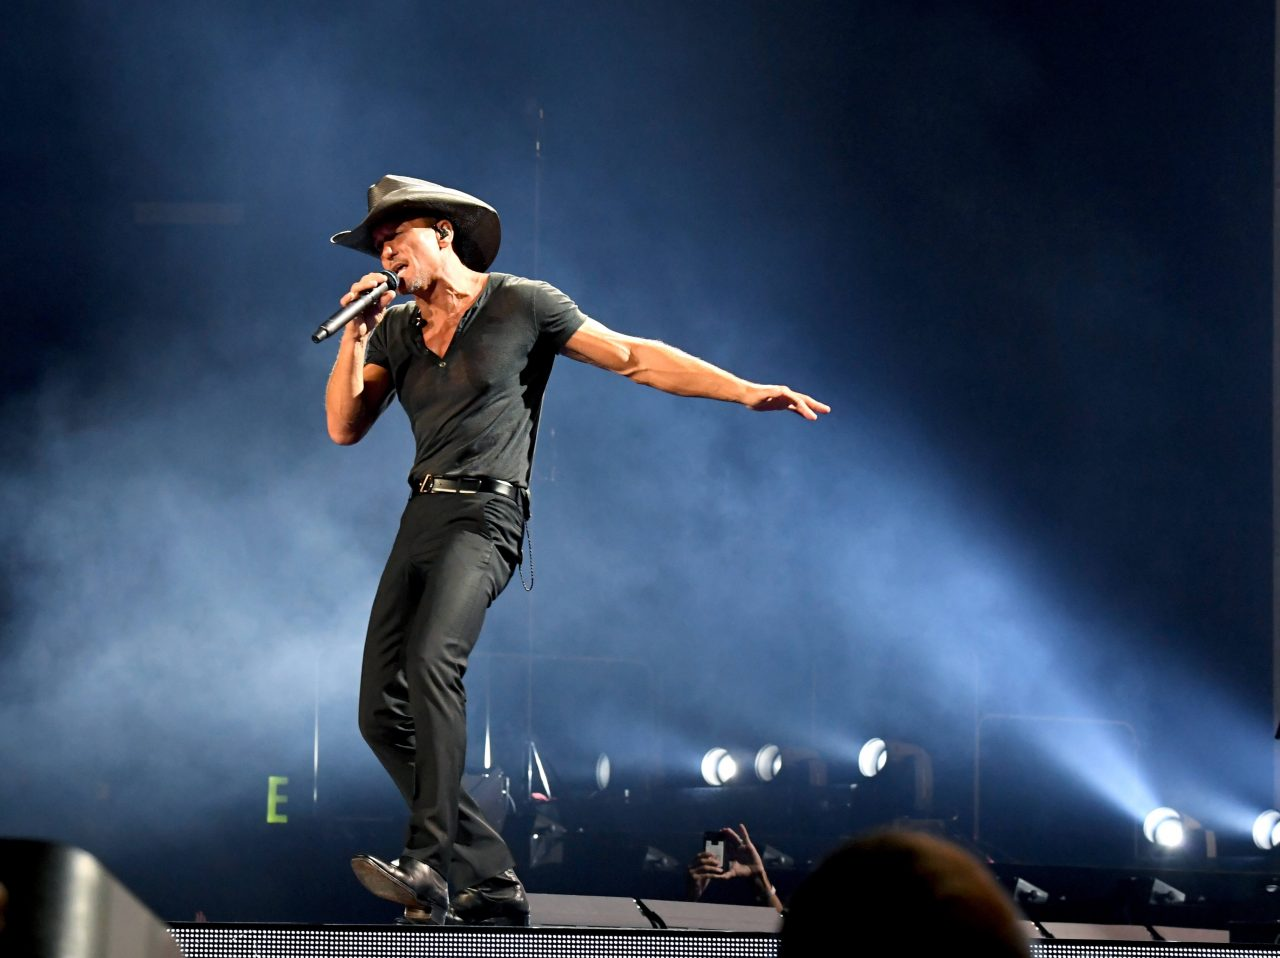 2019 Houston Rodeo Lineup Includes Tim McGraw, Chris Stapleton and More